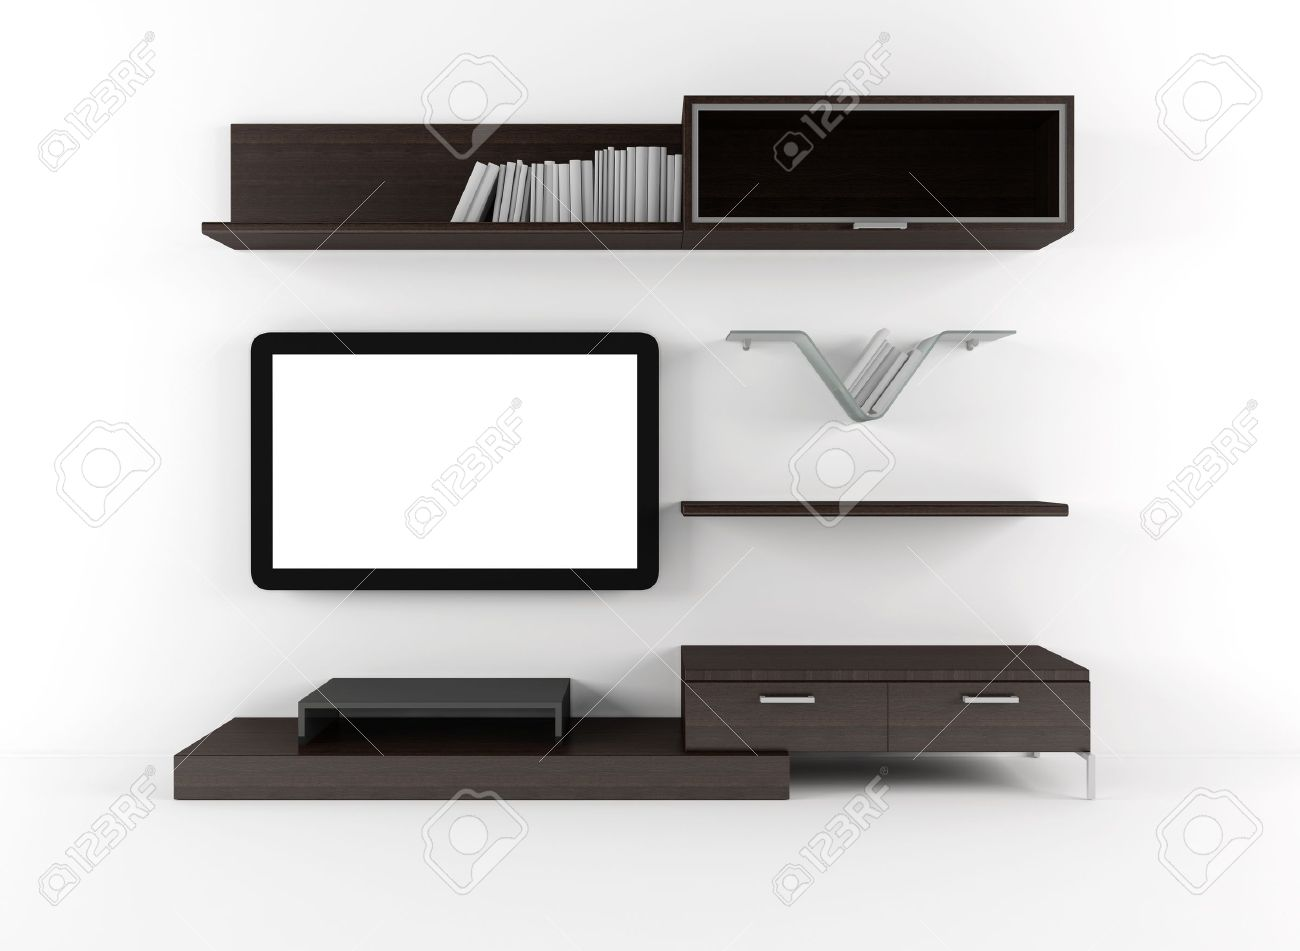 Living Room With Cabinet Shelves And Lcd Tv Stock Photo   11905810